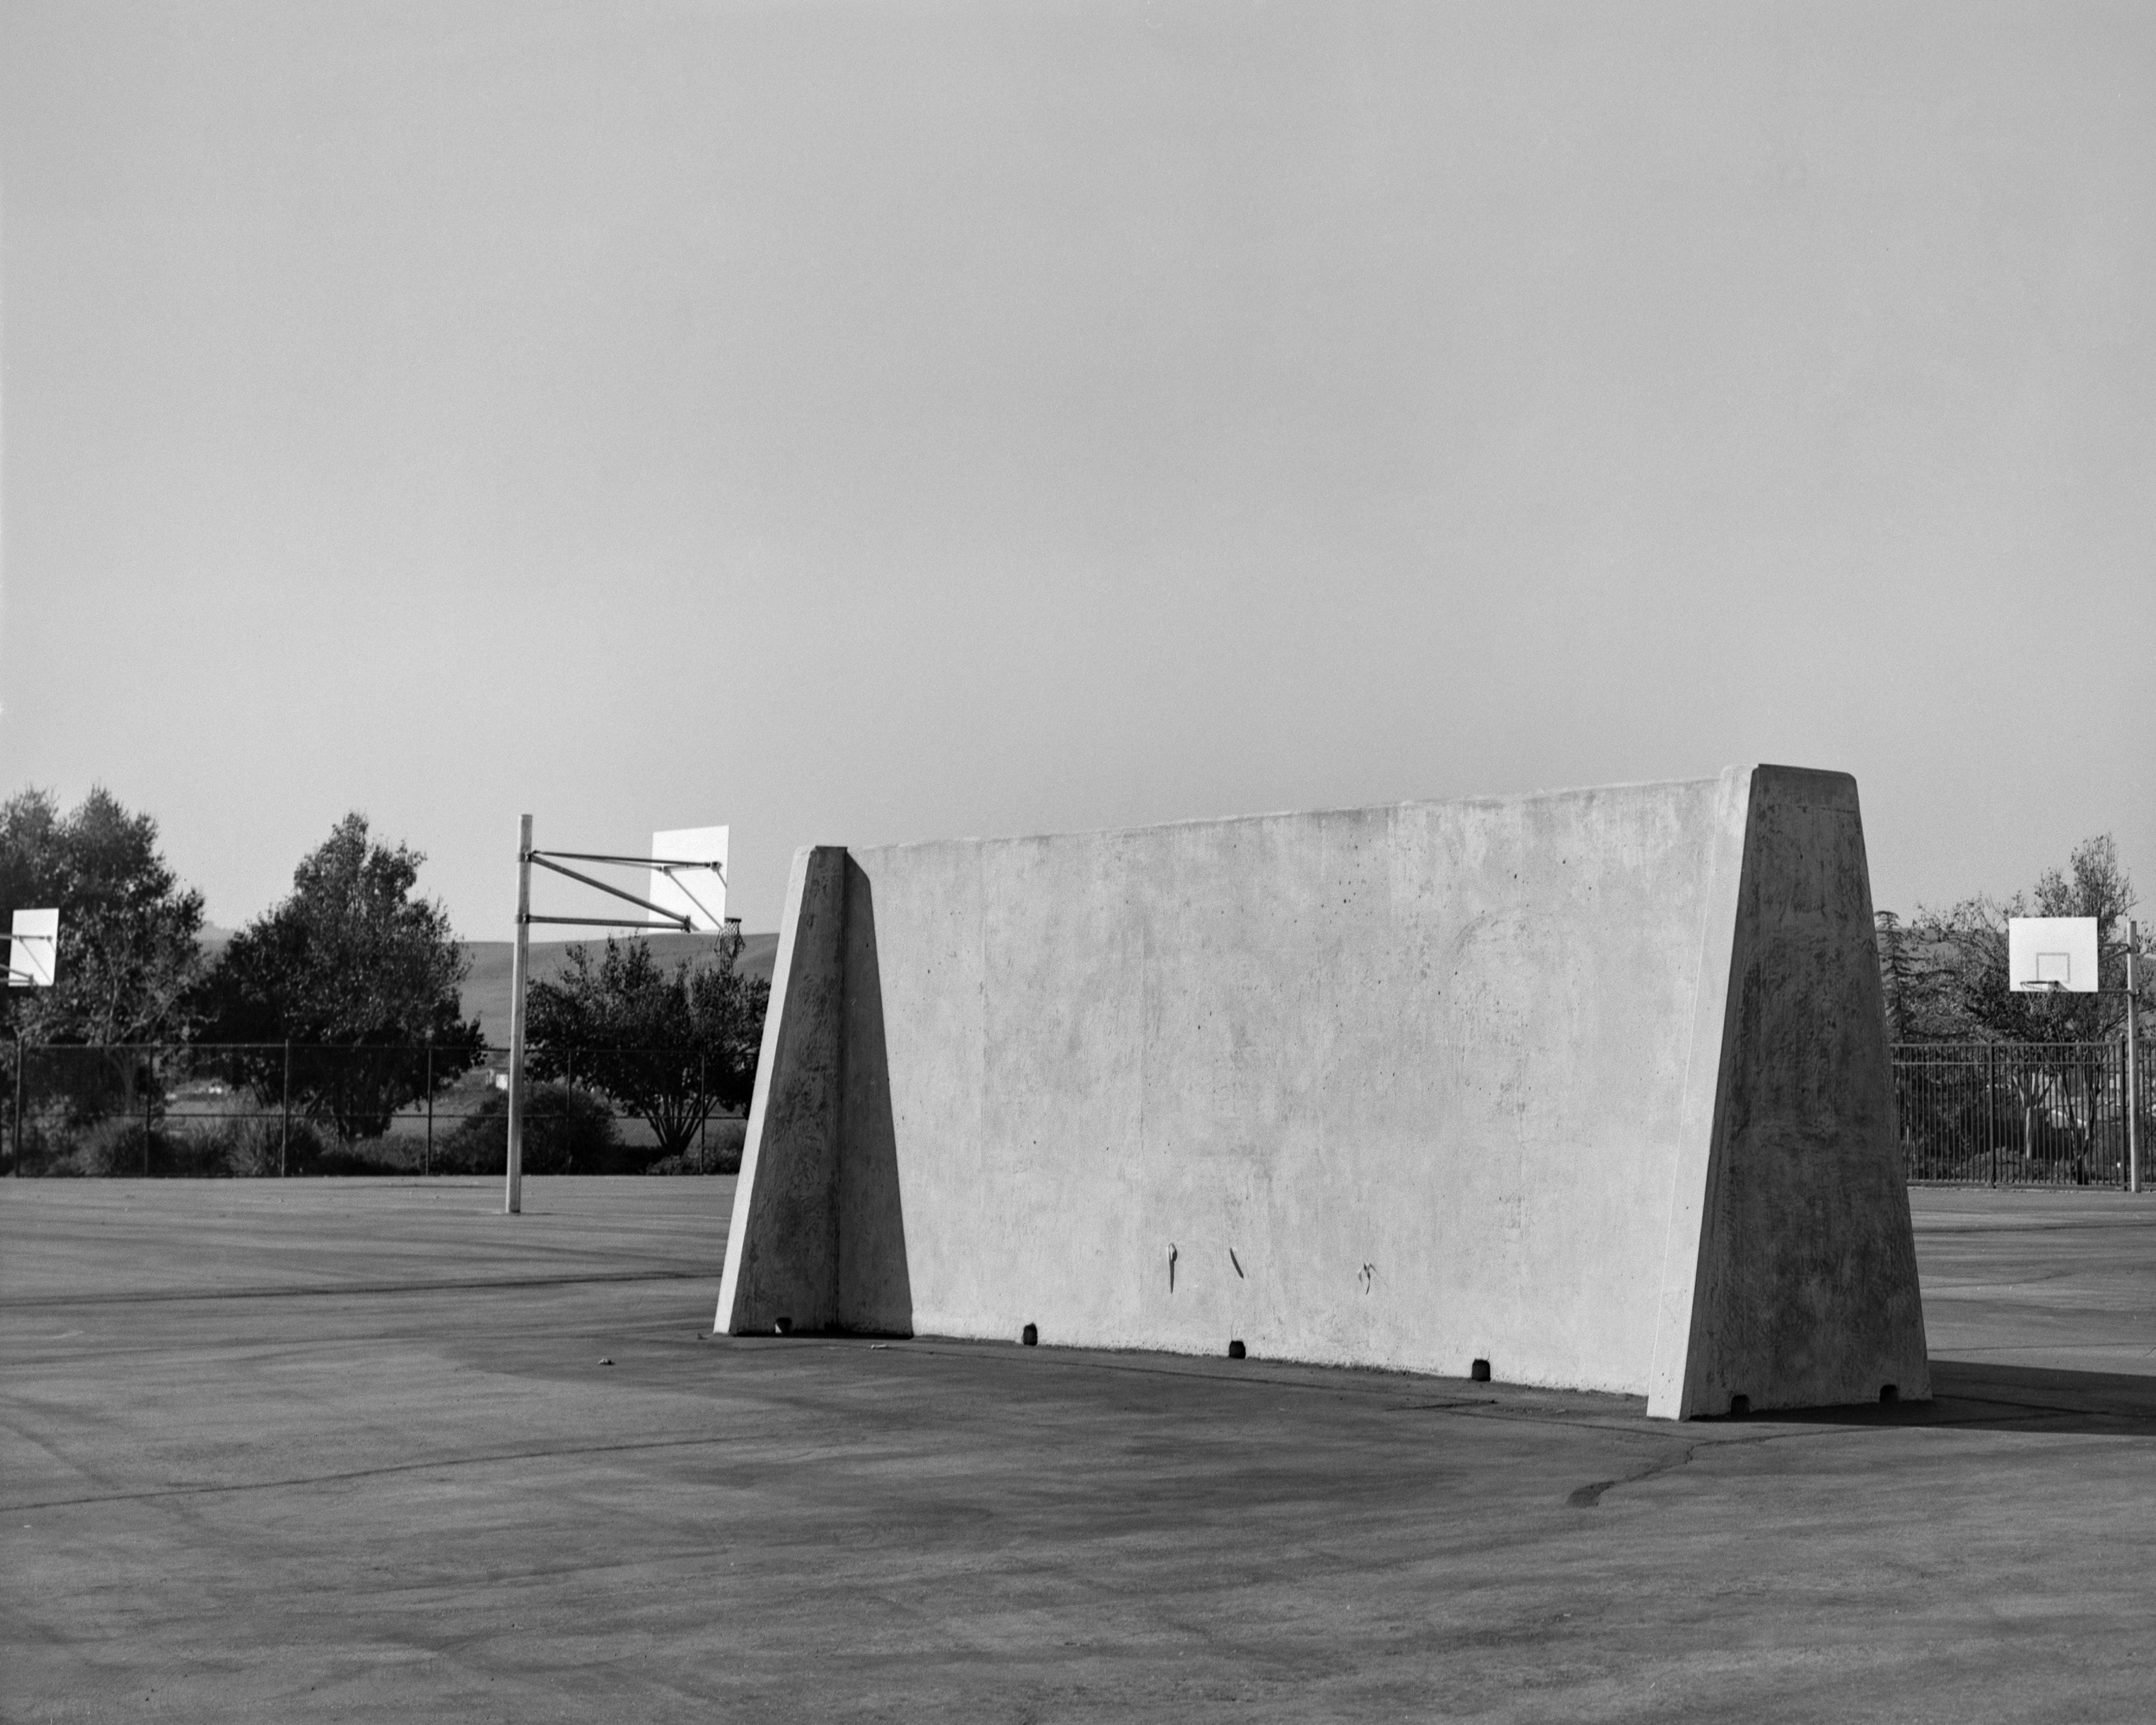 A black-and-white photograph of a wall ball court, featuring a free-standing cement wall. It sits in the middle of an empty asphalt school yard, in front of basketball hoops, fencing, and trees.